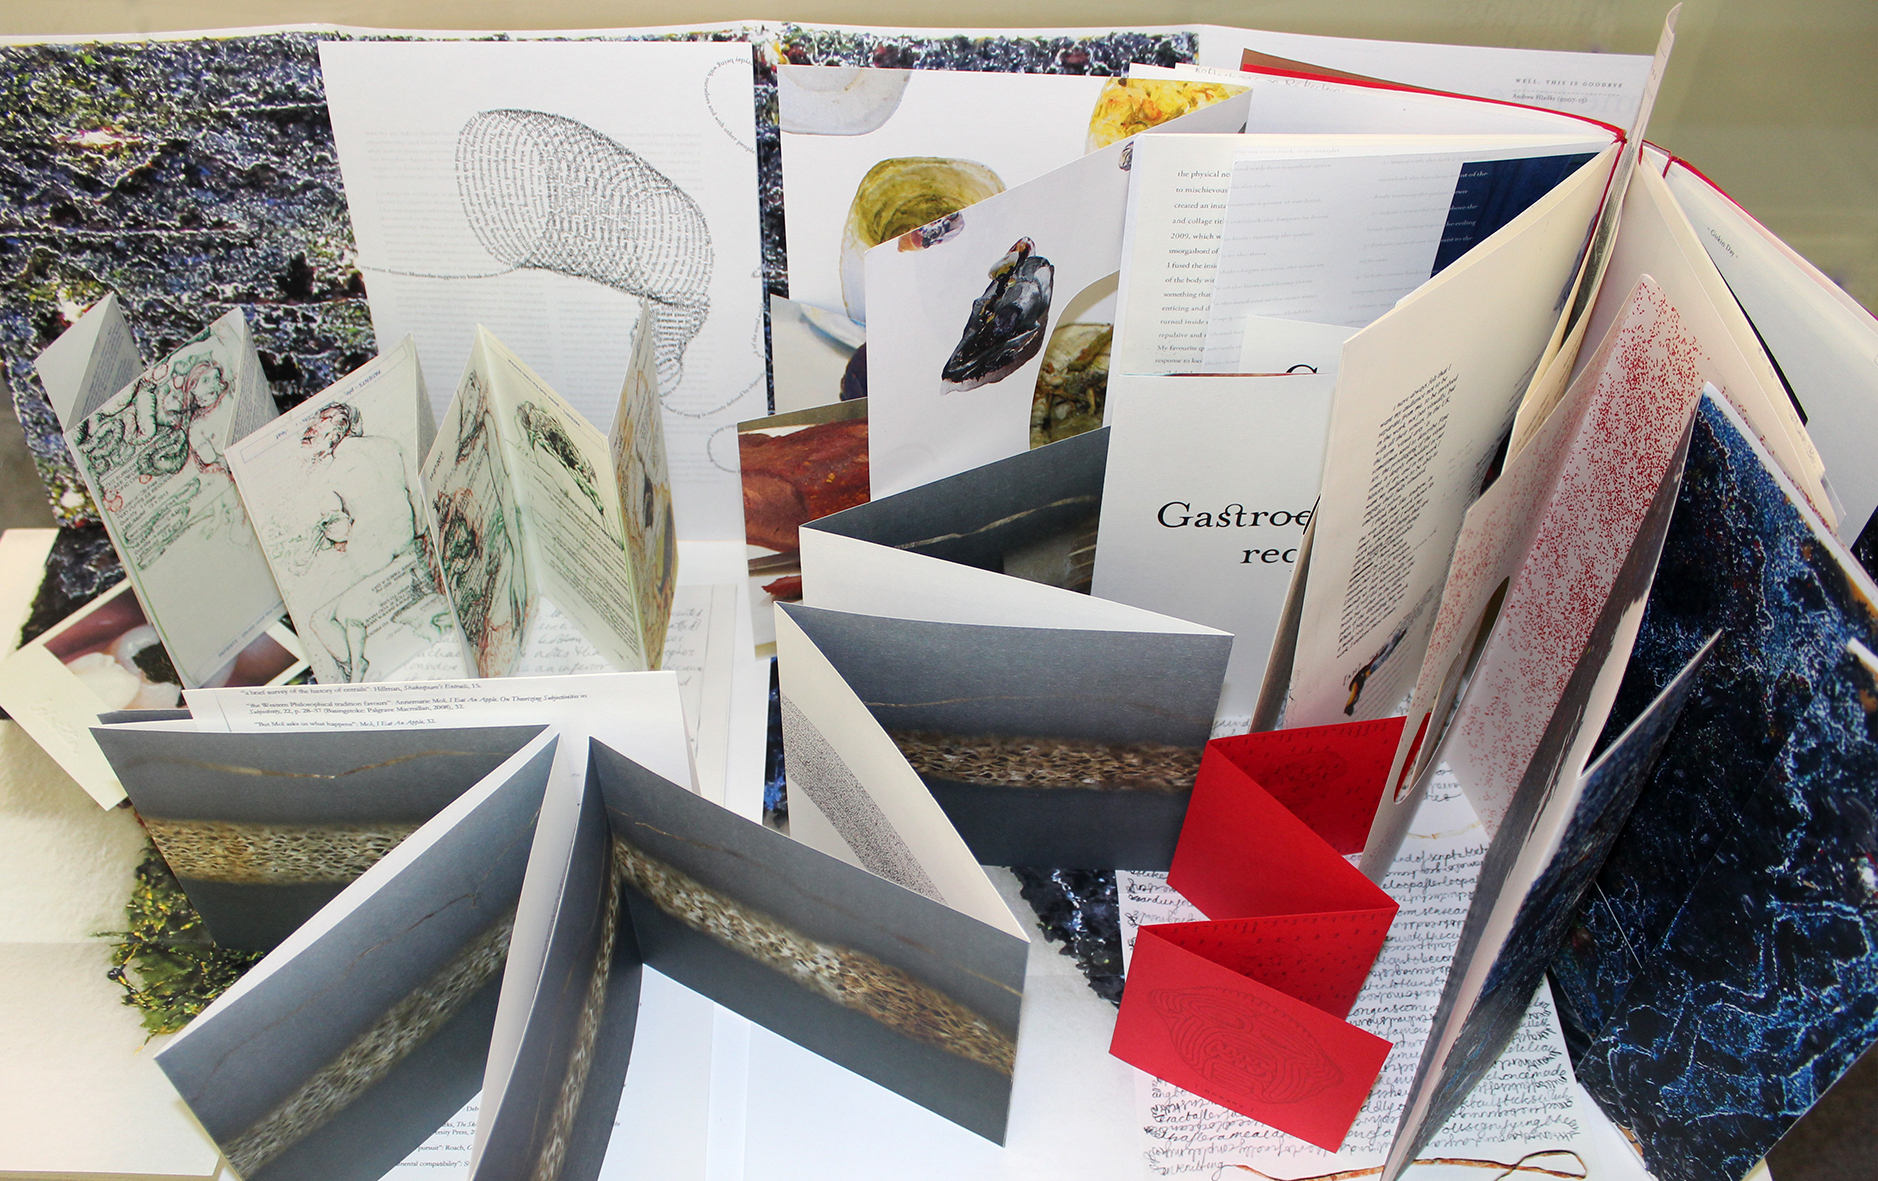 Artists books now